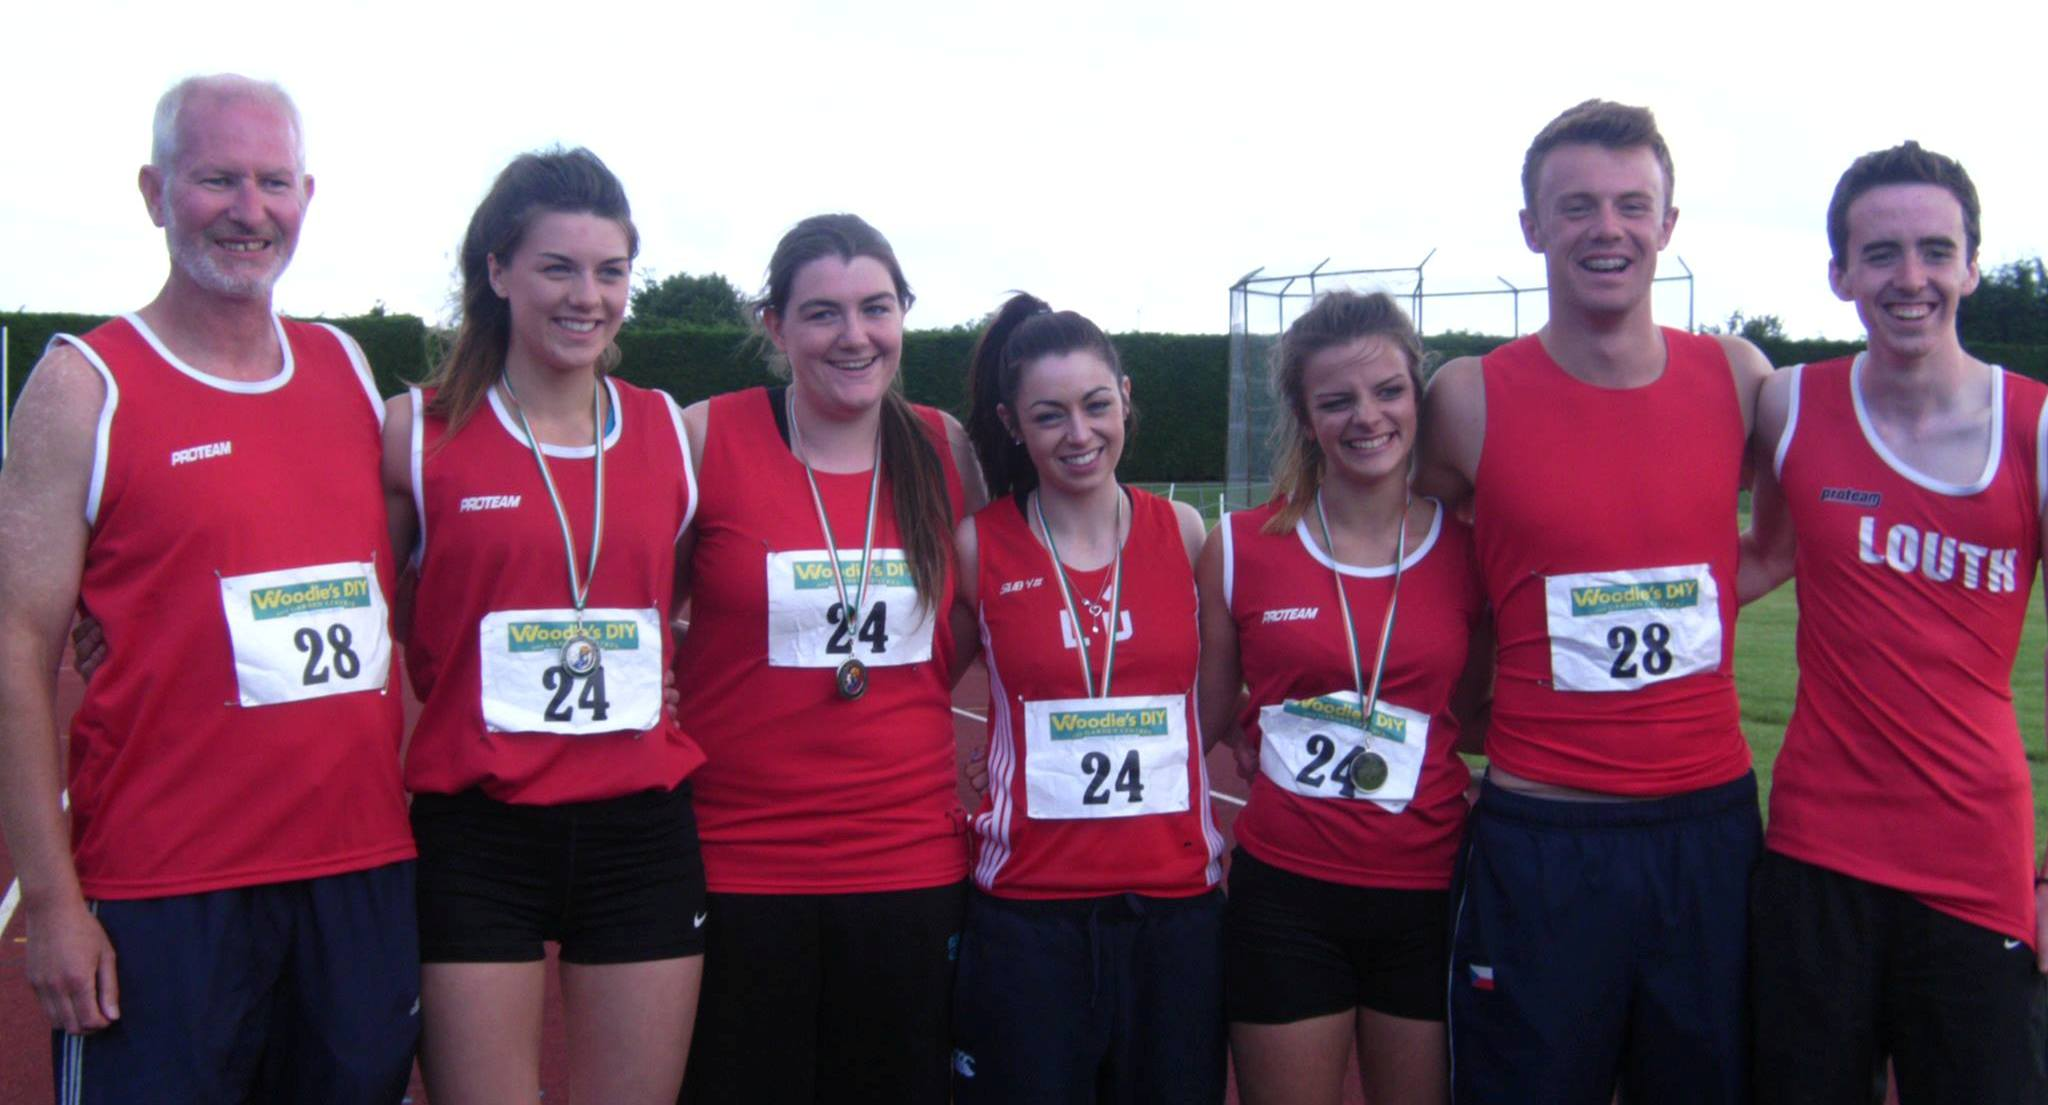 St Peter's AC athletes at Irish League Final (Tullamore, August 2013)